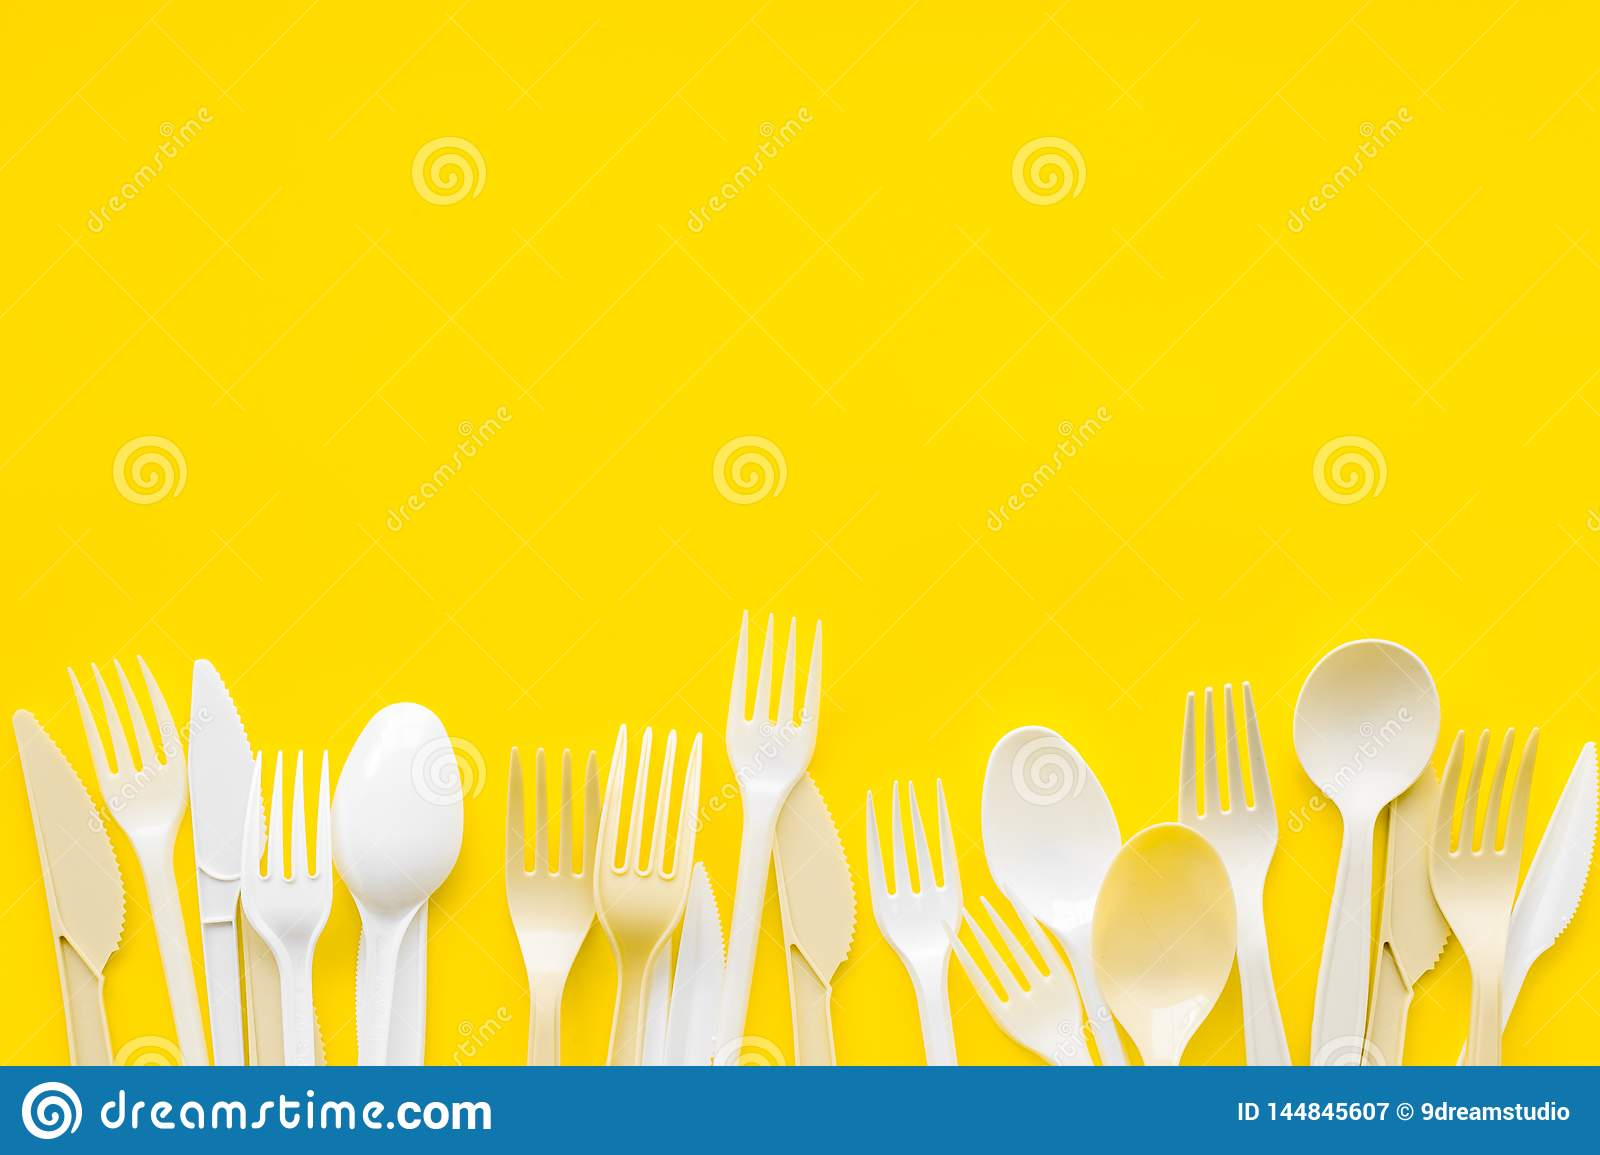 Plastic Flatware Forks Spoons Knifes For Eco And Earth